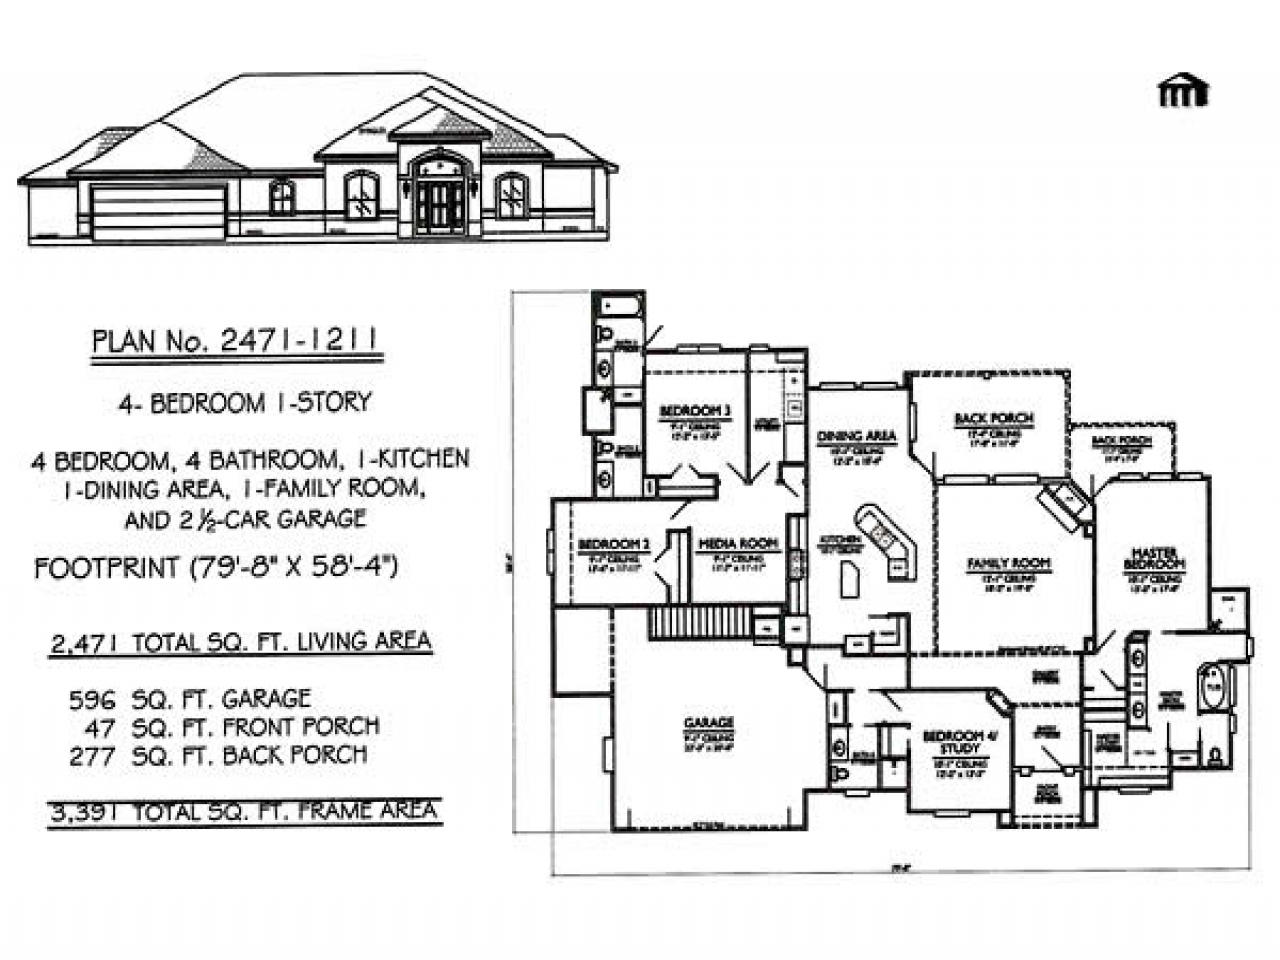 1 story 4 bedroom house plans 4 bedroom house house plans - Single story four bedroom house plans ...